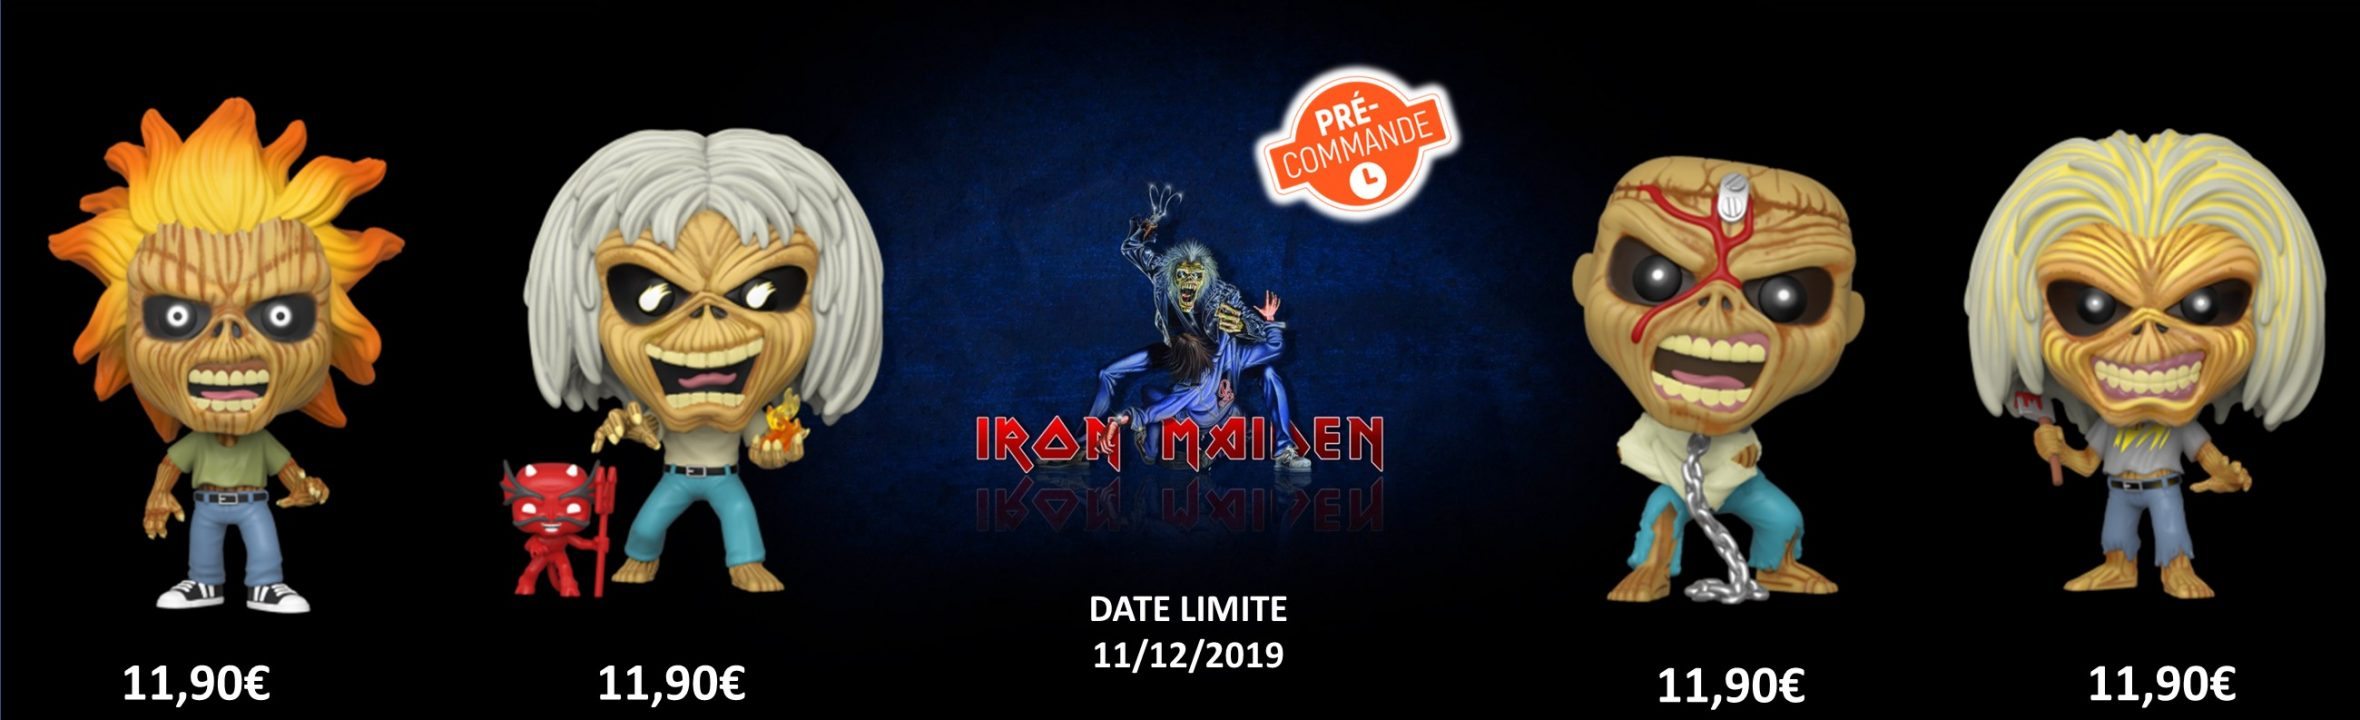 funko pop Iron Maiden précommande